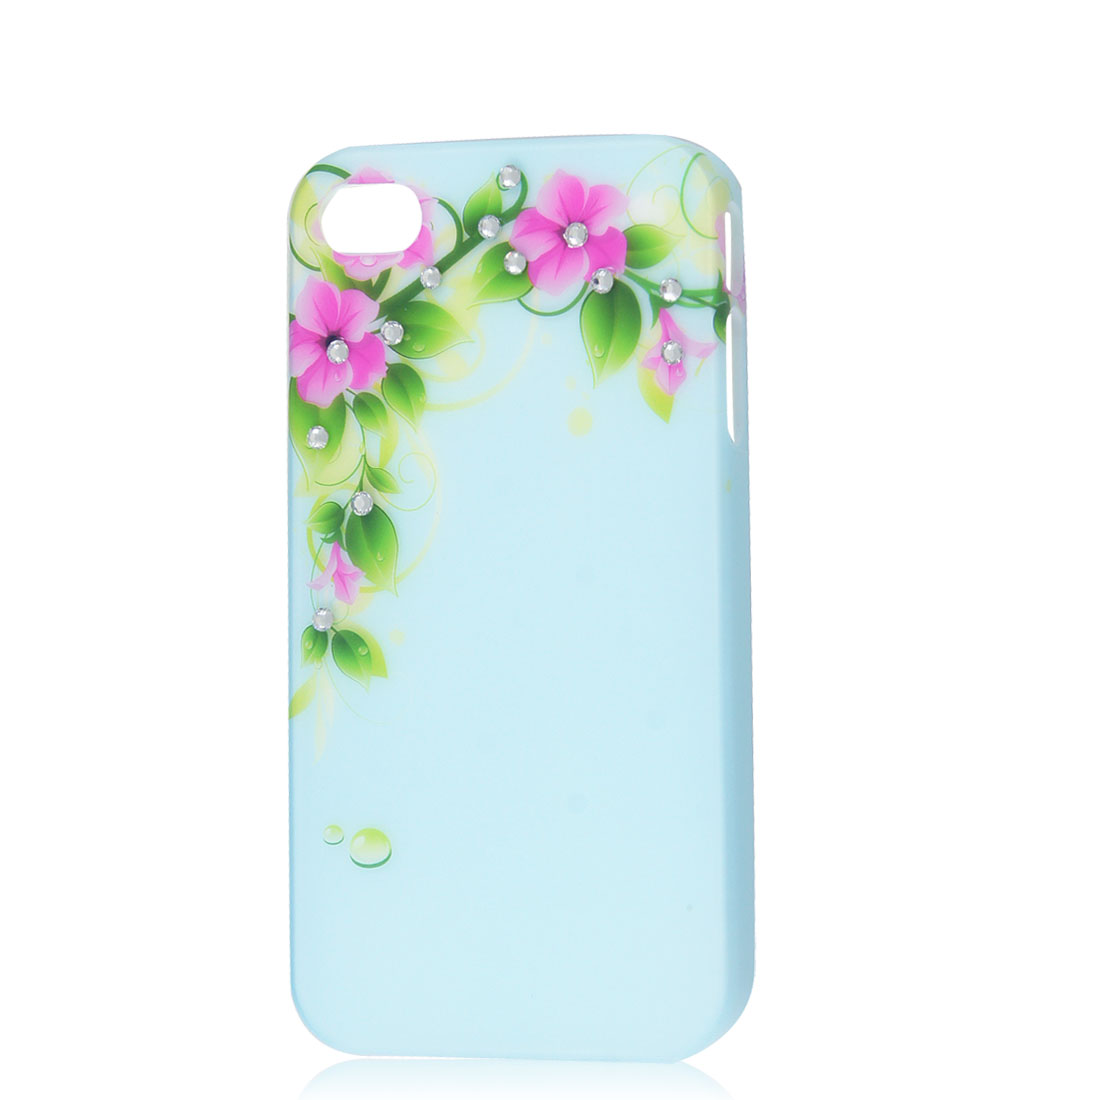 Light Blue Glitter Rhinestone Flower Protective Hard Back Case for iPhone 4 4G